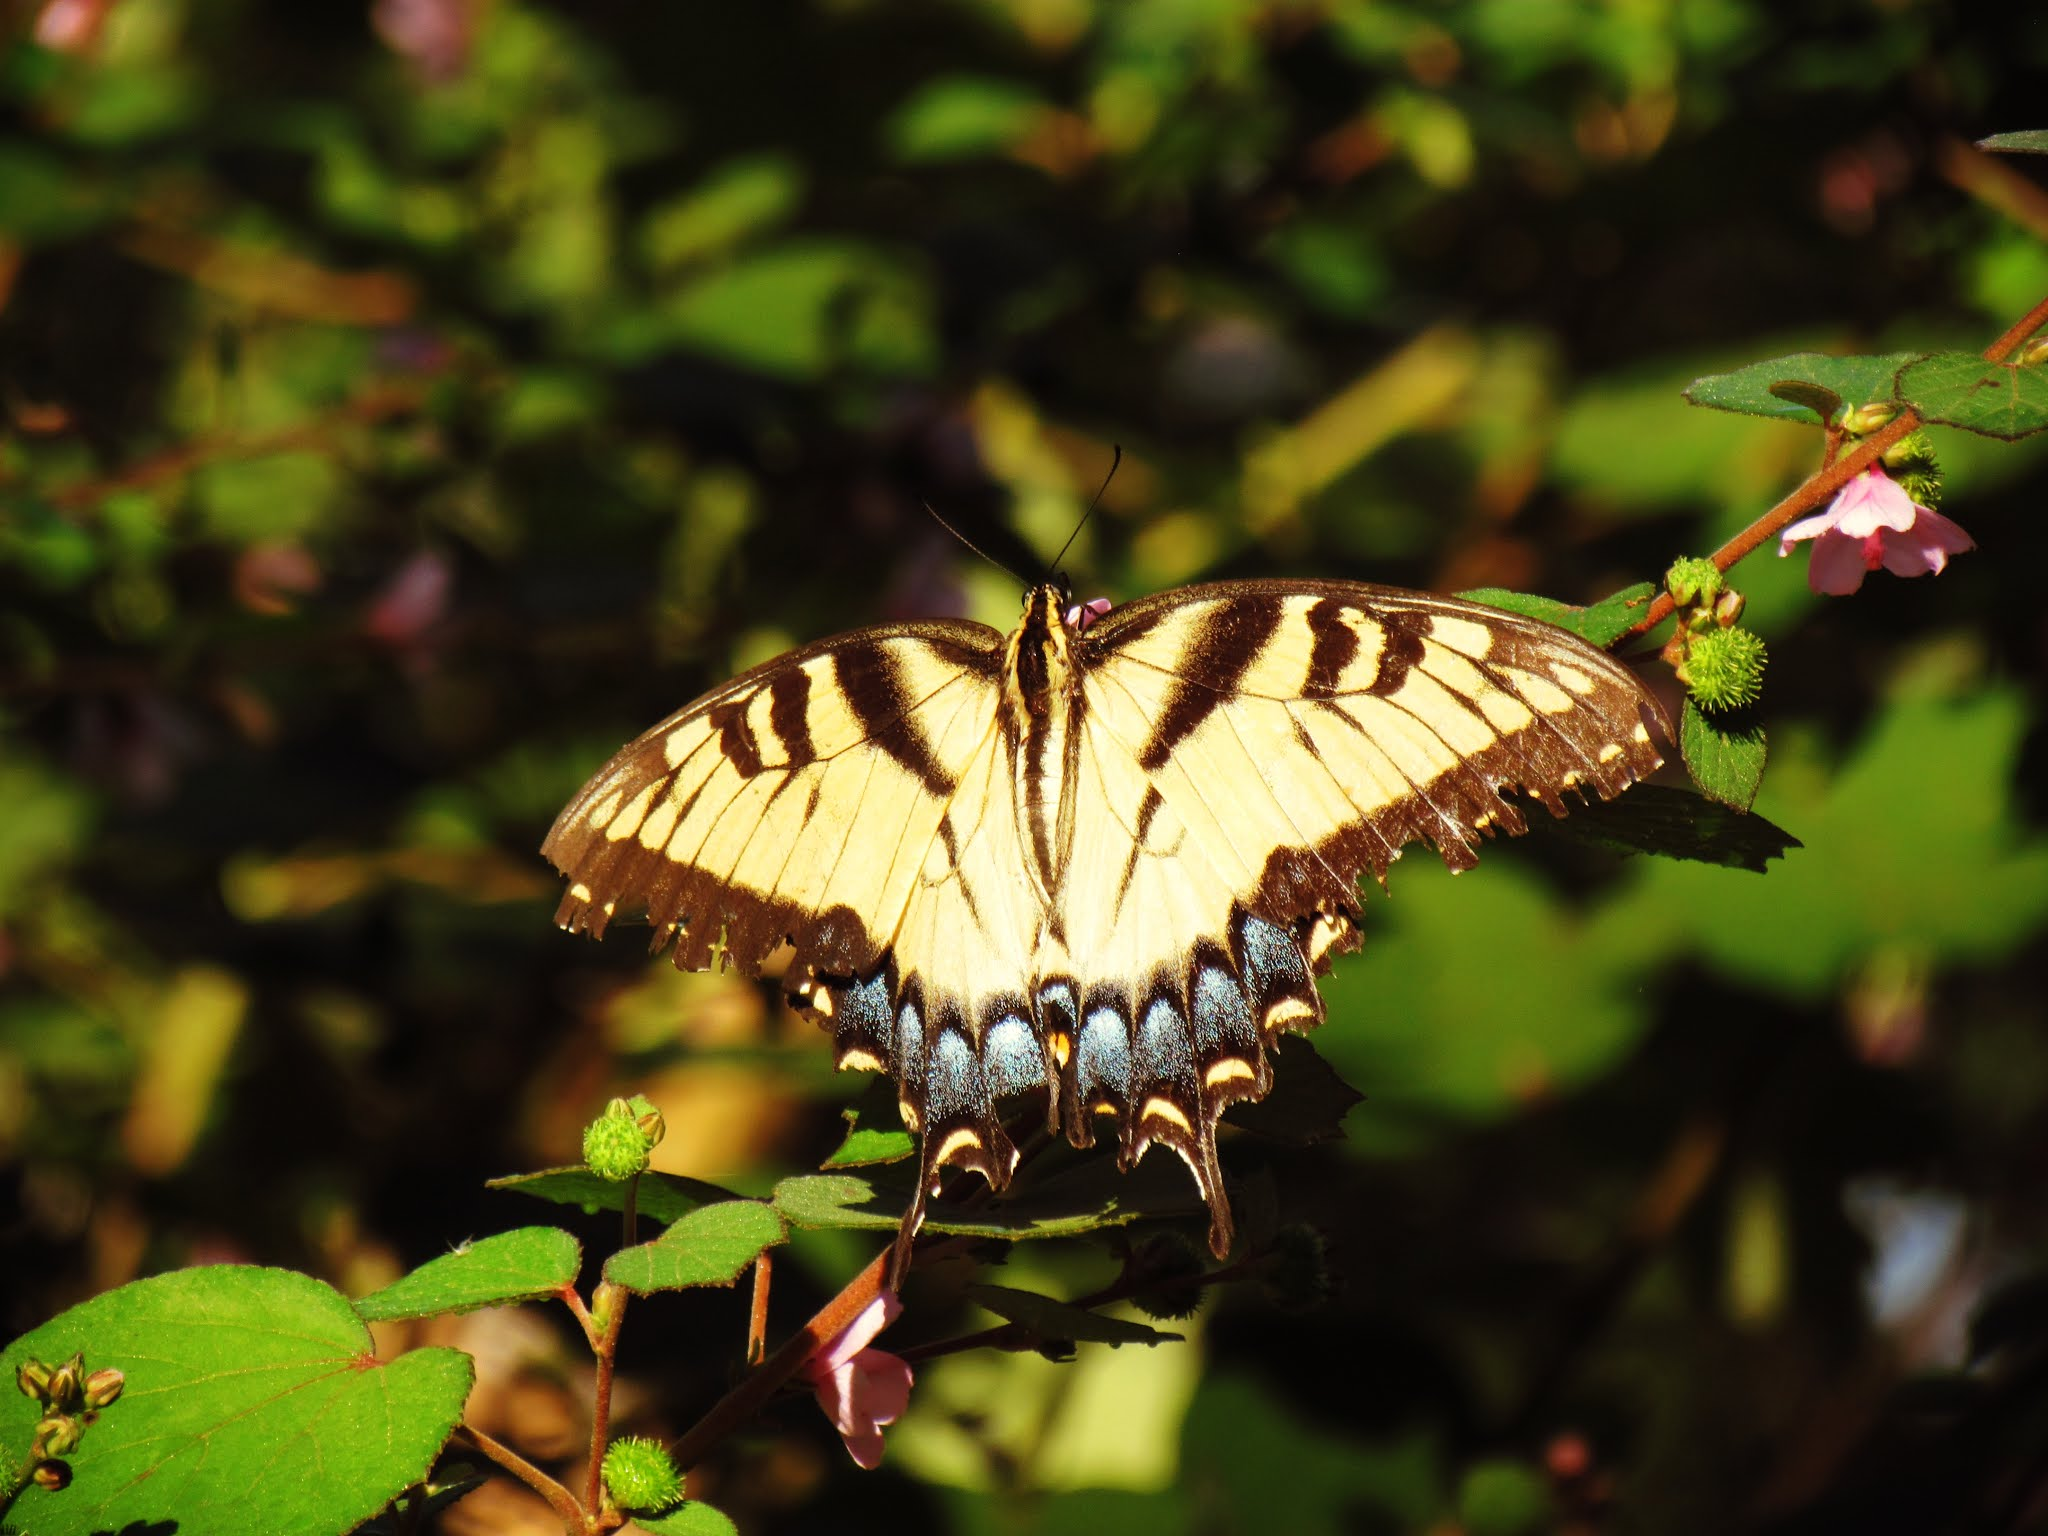 A beautiful Florida swallowtail butterfly with blue wing markings in a Florida haunted woodland in the shade